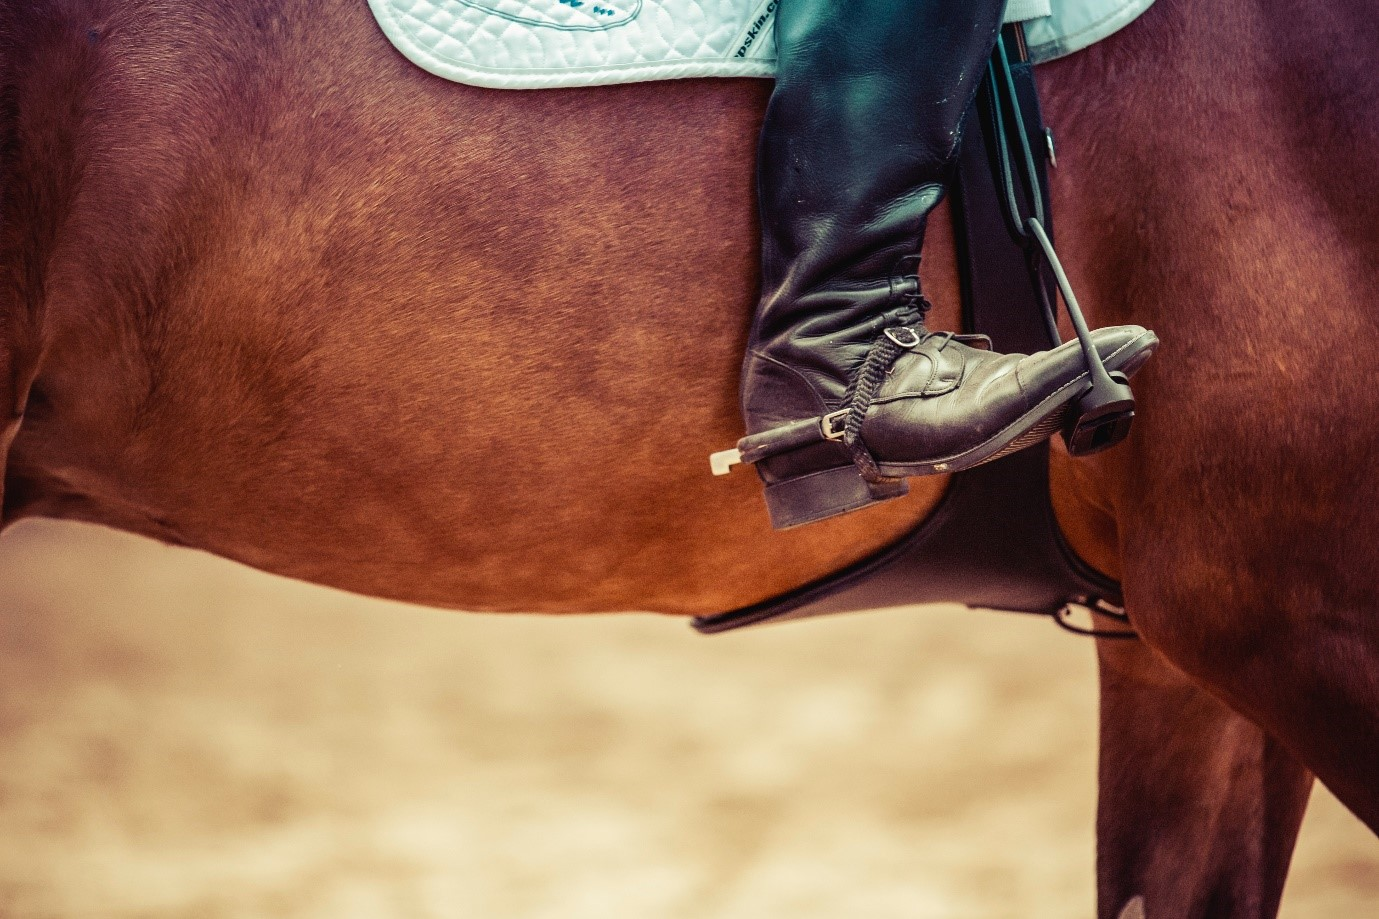 How to take good photos – close up of cowboy boot in stirrups